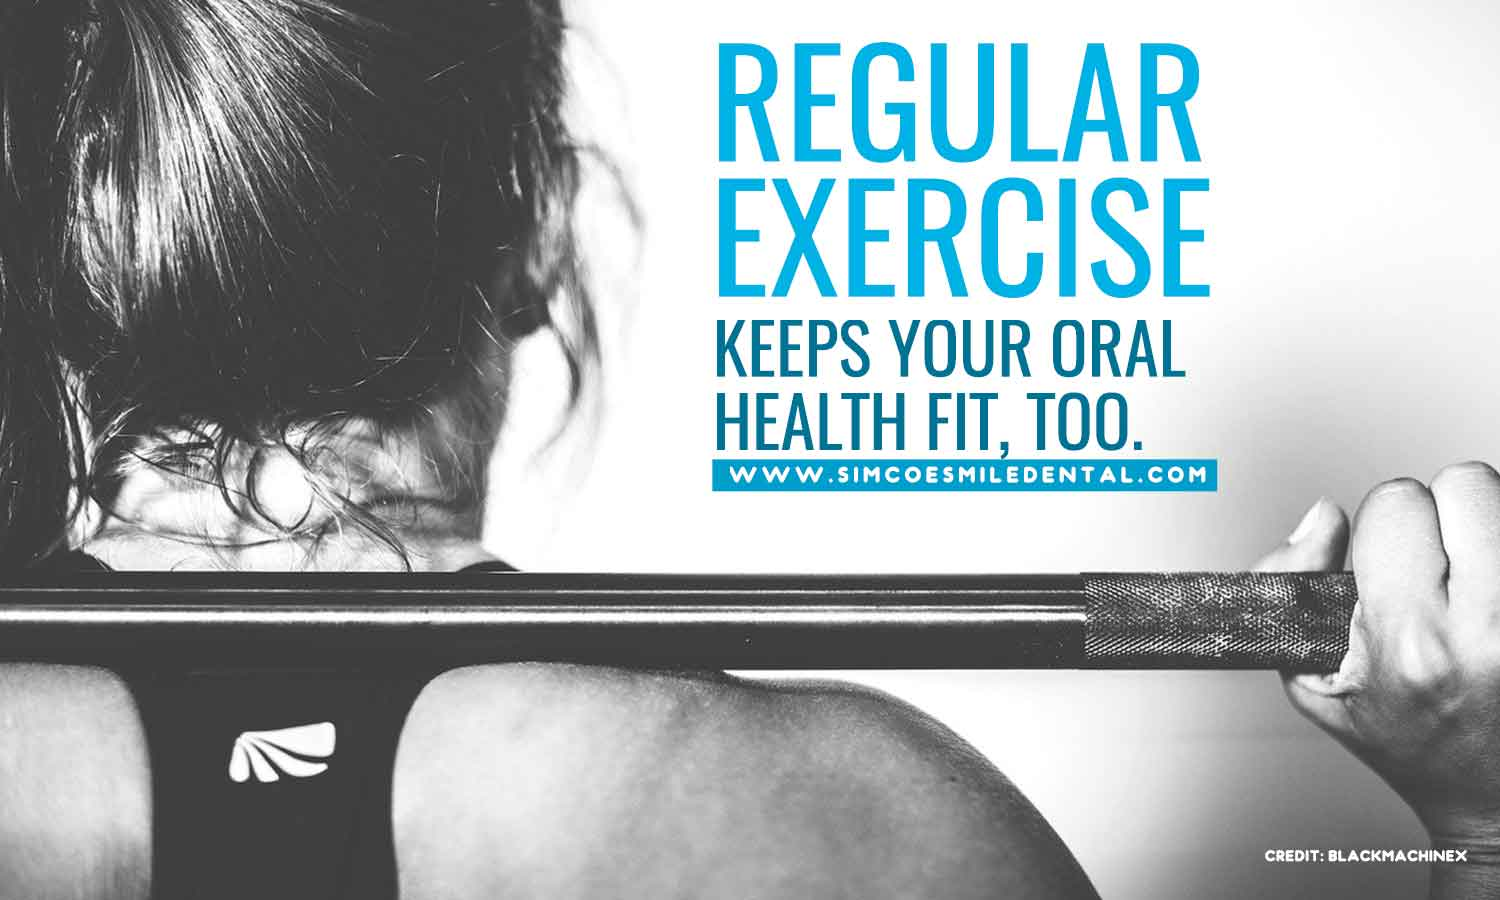 Regular-exercise-keeps-your-oral-health-fit-too How A Healthy Lifestyle Can Preserve Your Oral Health